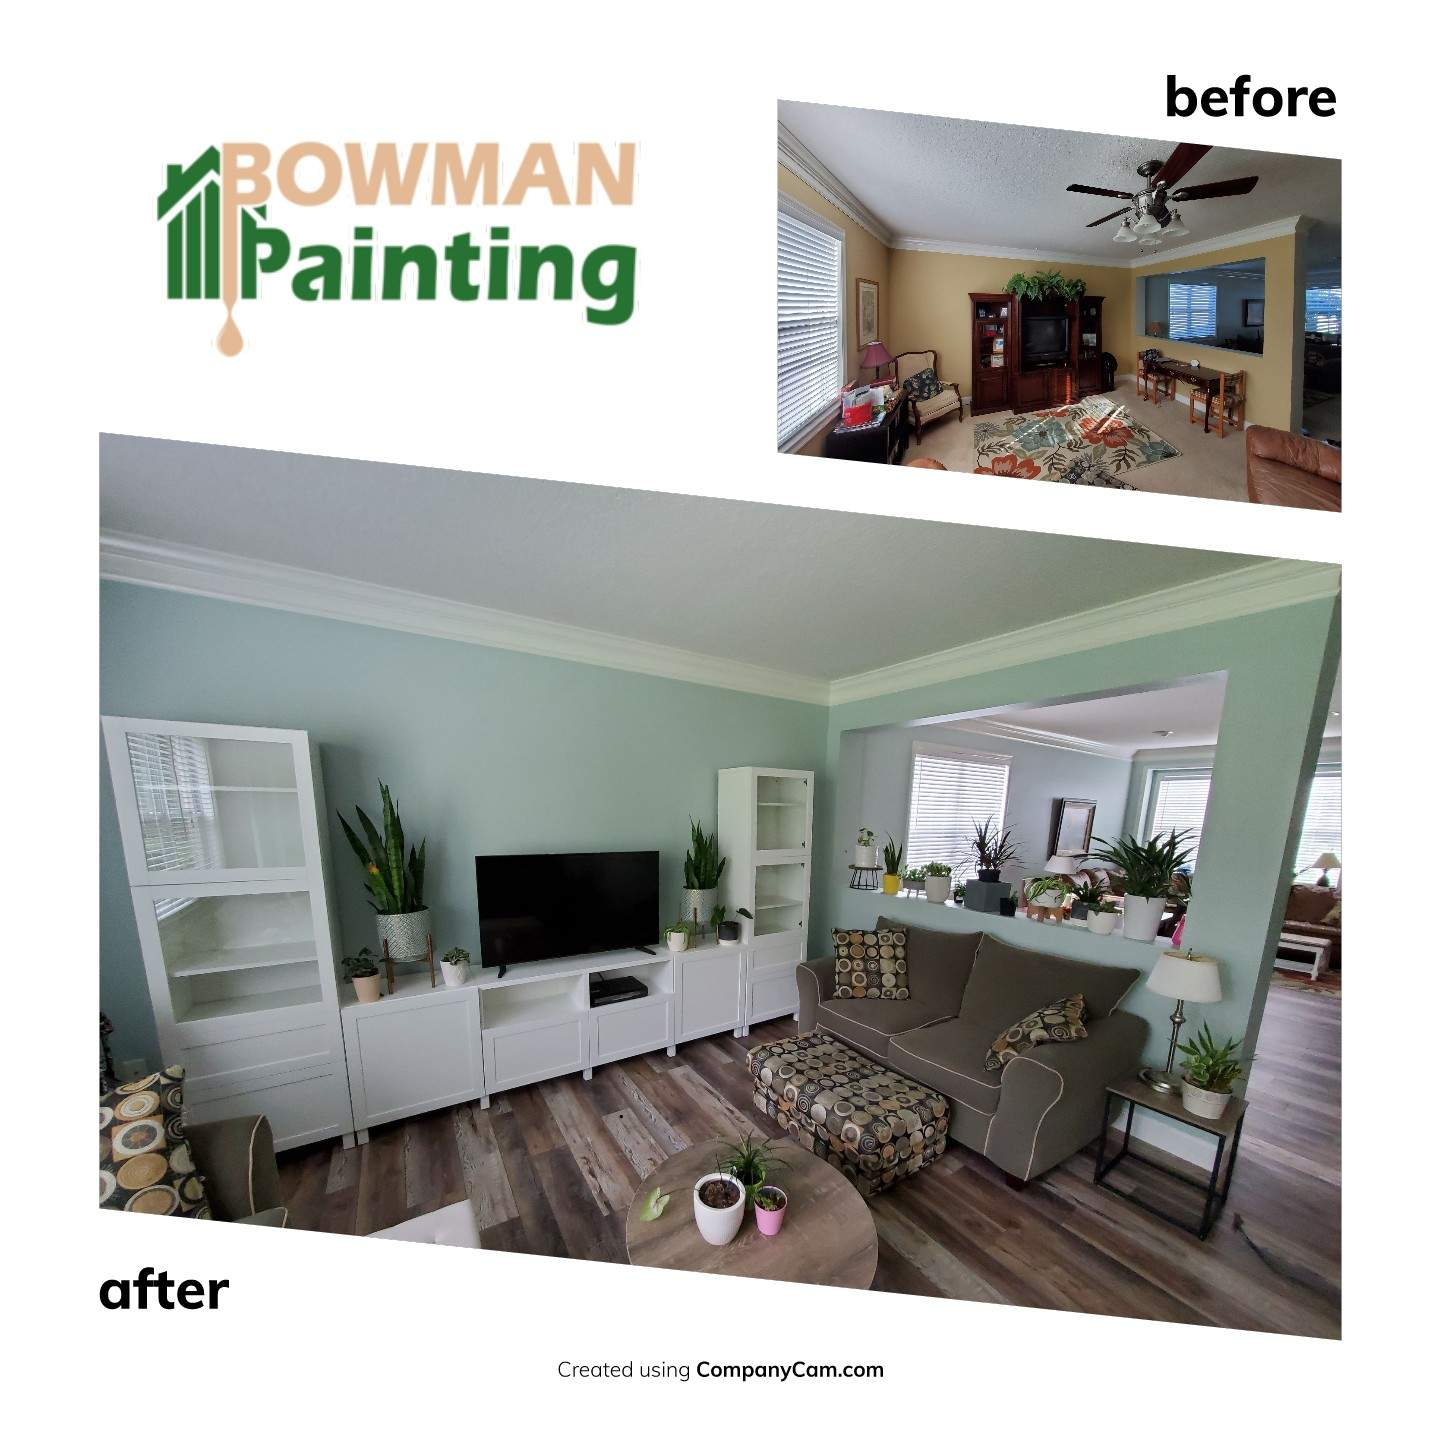 Bowman Painting Celebrates 15 Years! 2